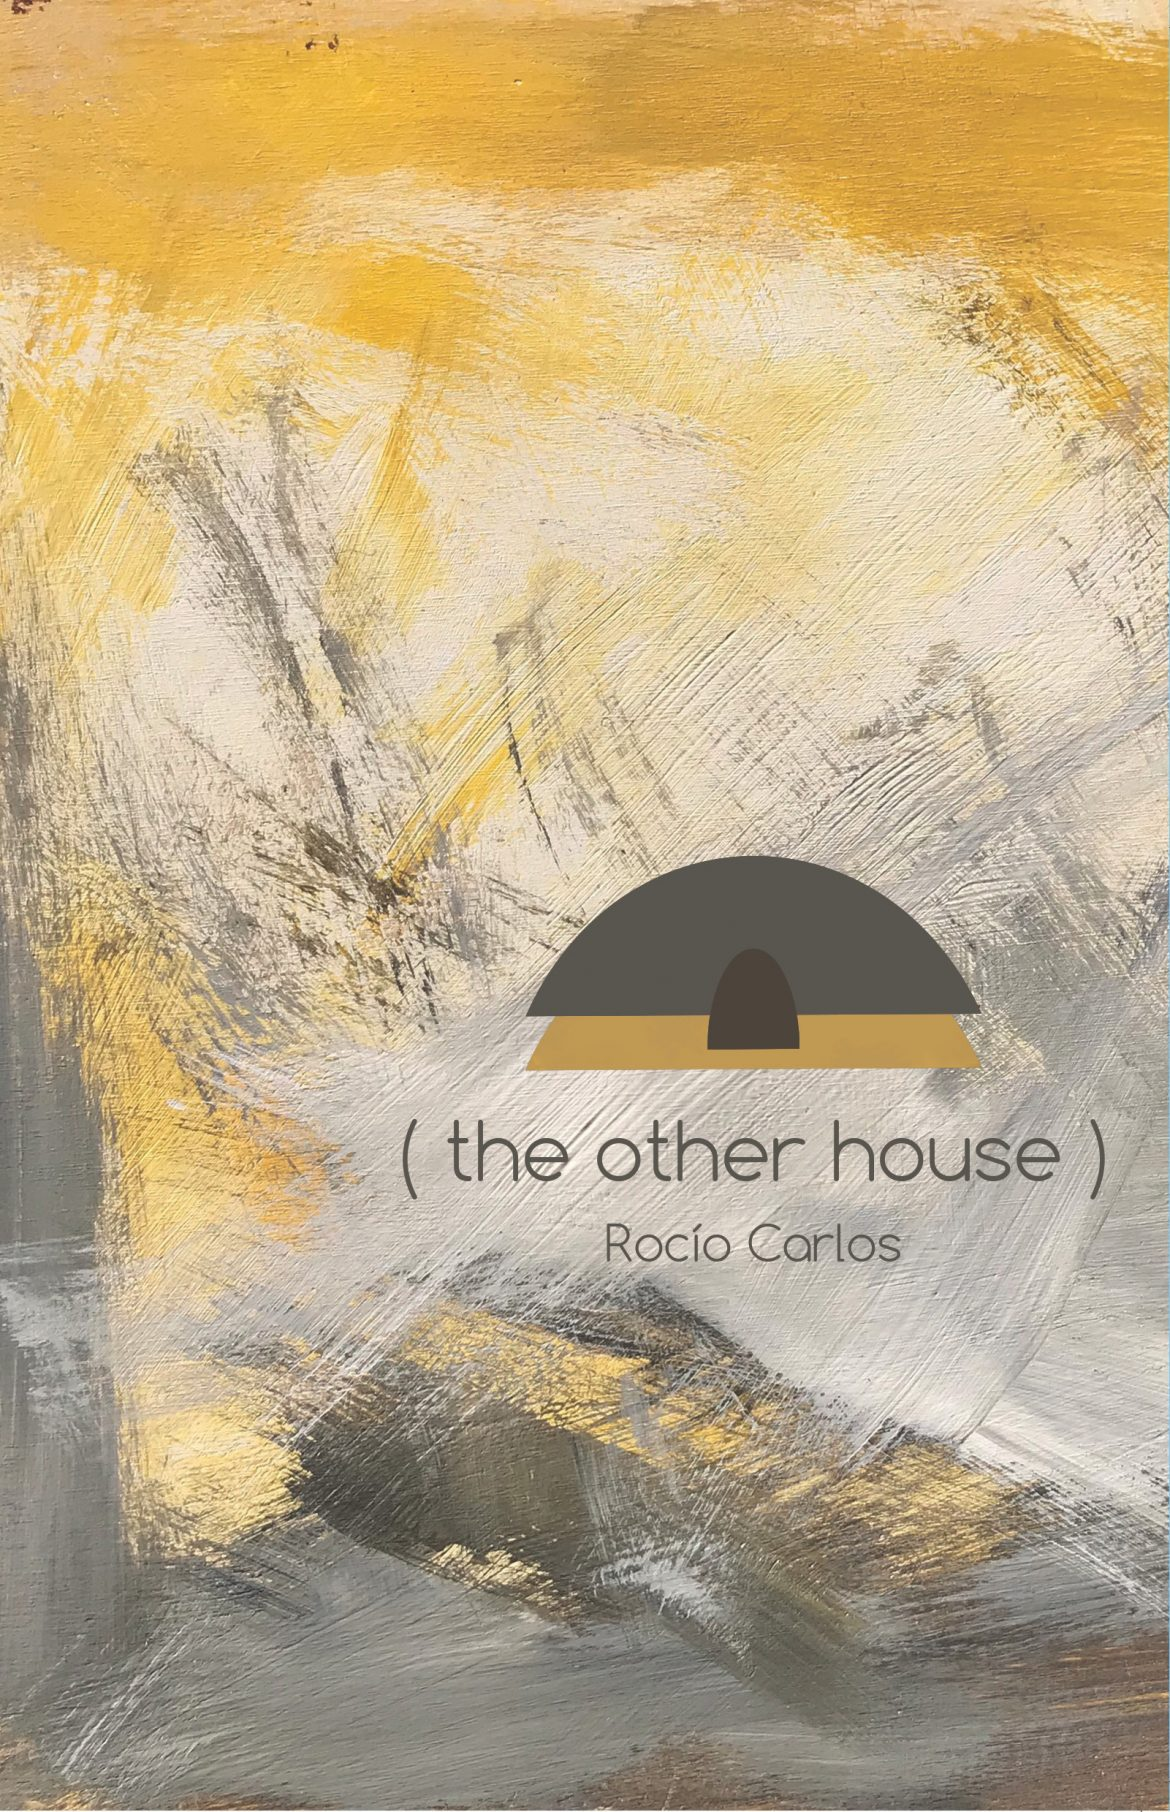 (the other house) by Rocío Carlos